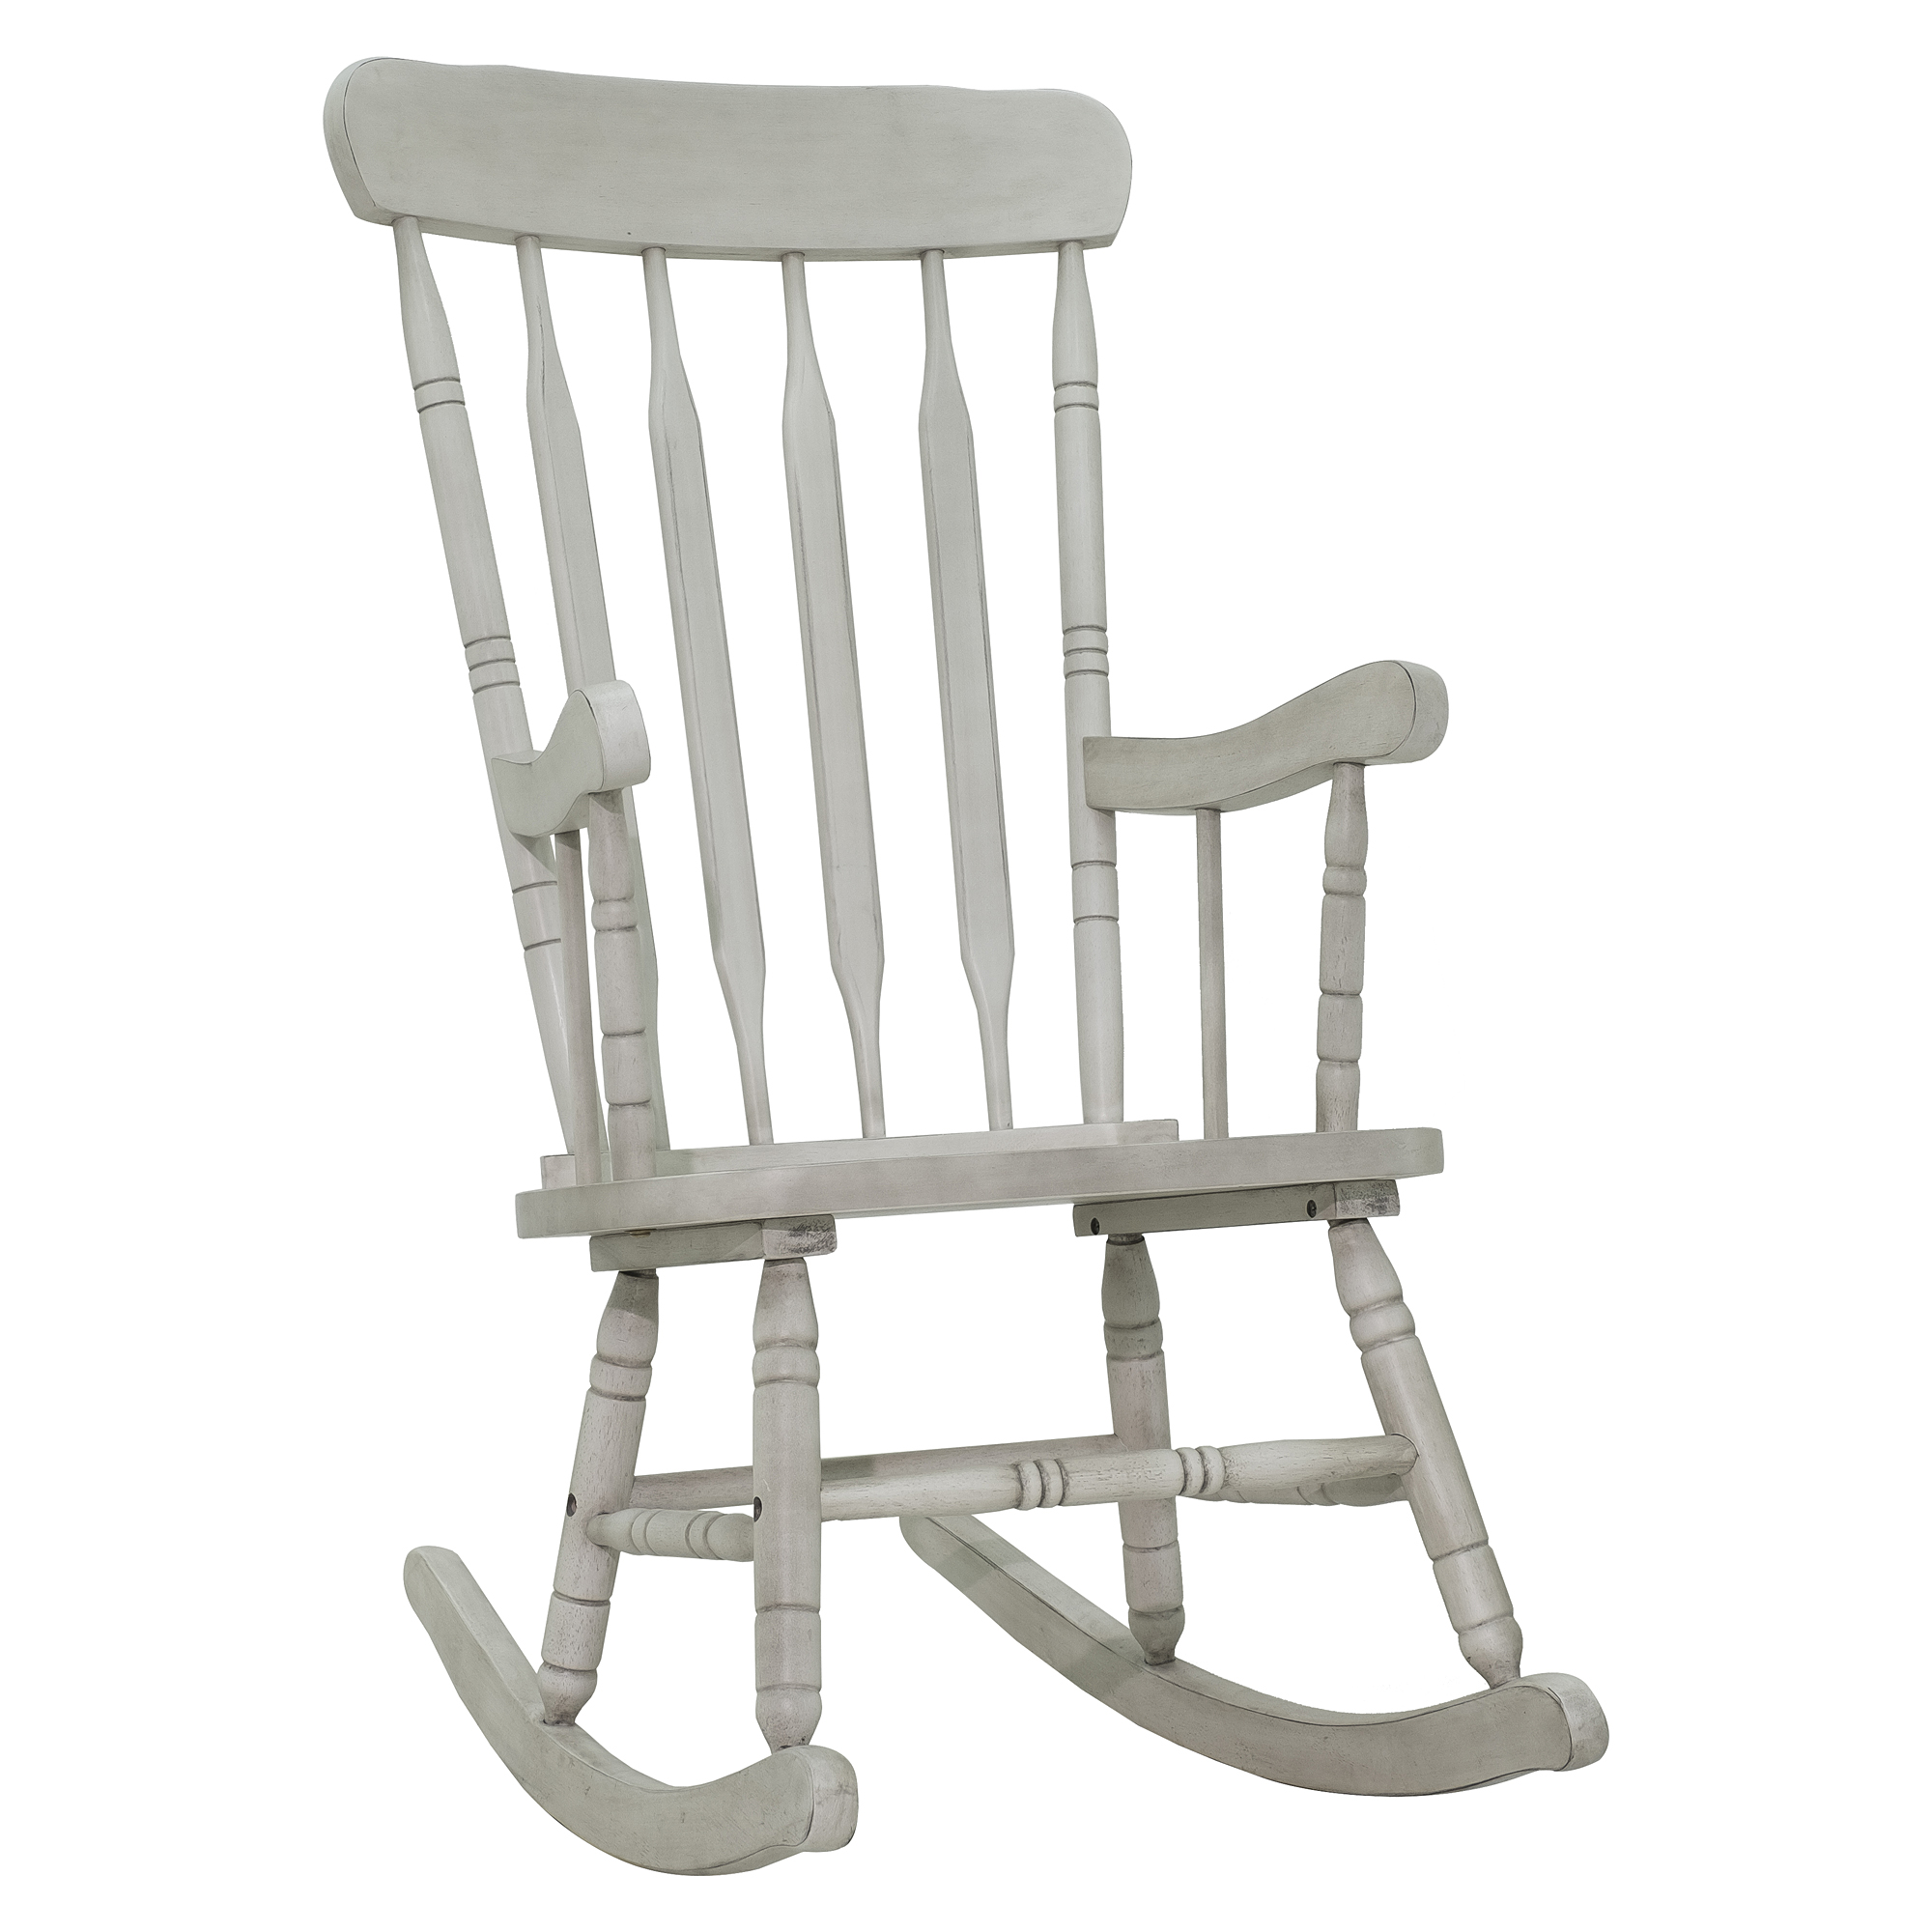 HOMCOM Rubberwood Indoor / Outdoor Porch Slat Rocking Chair - Antique White